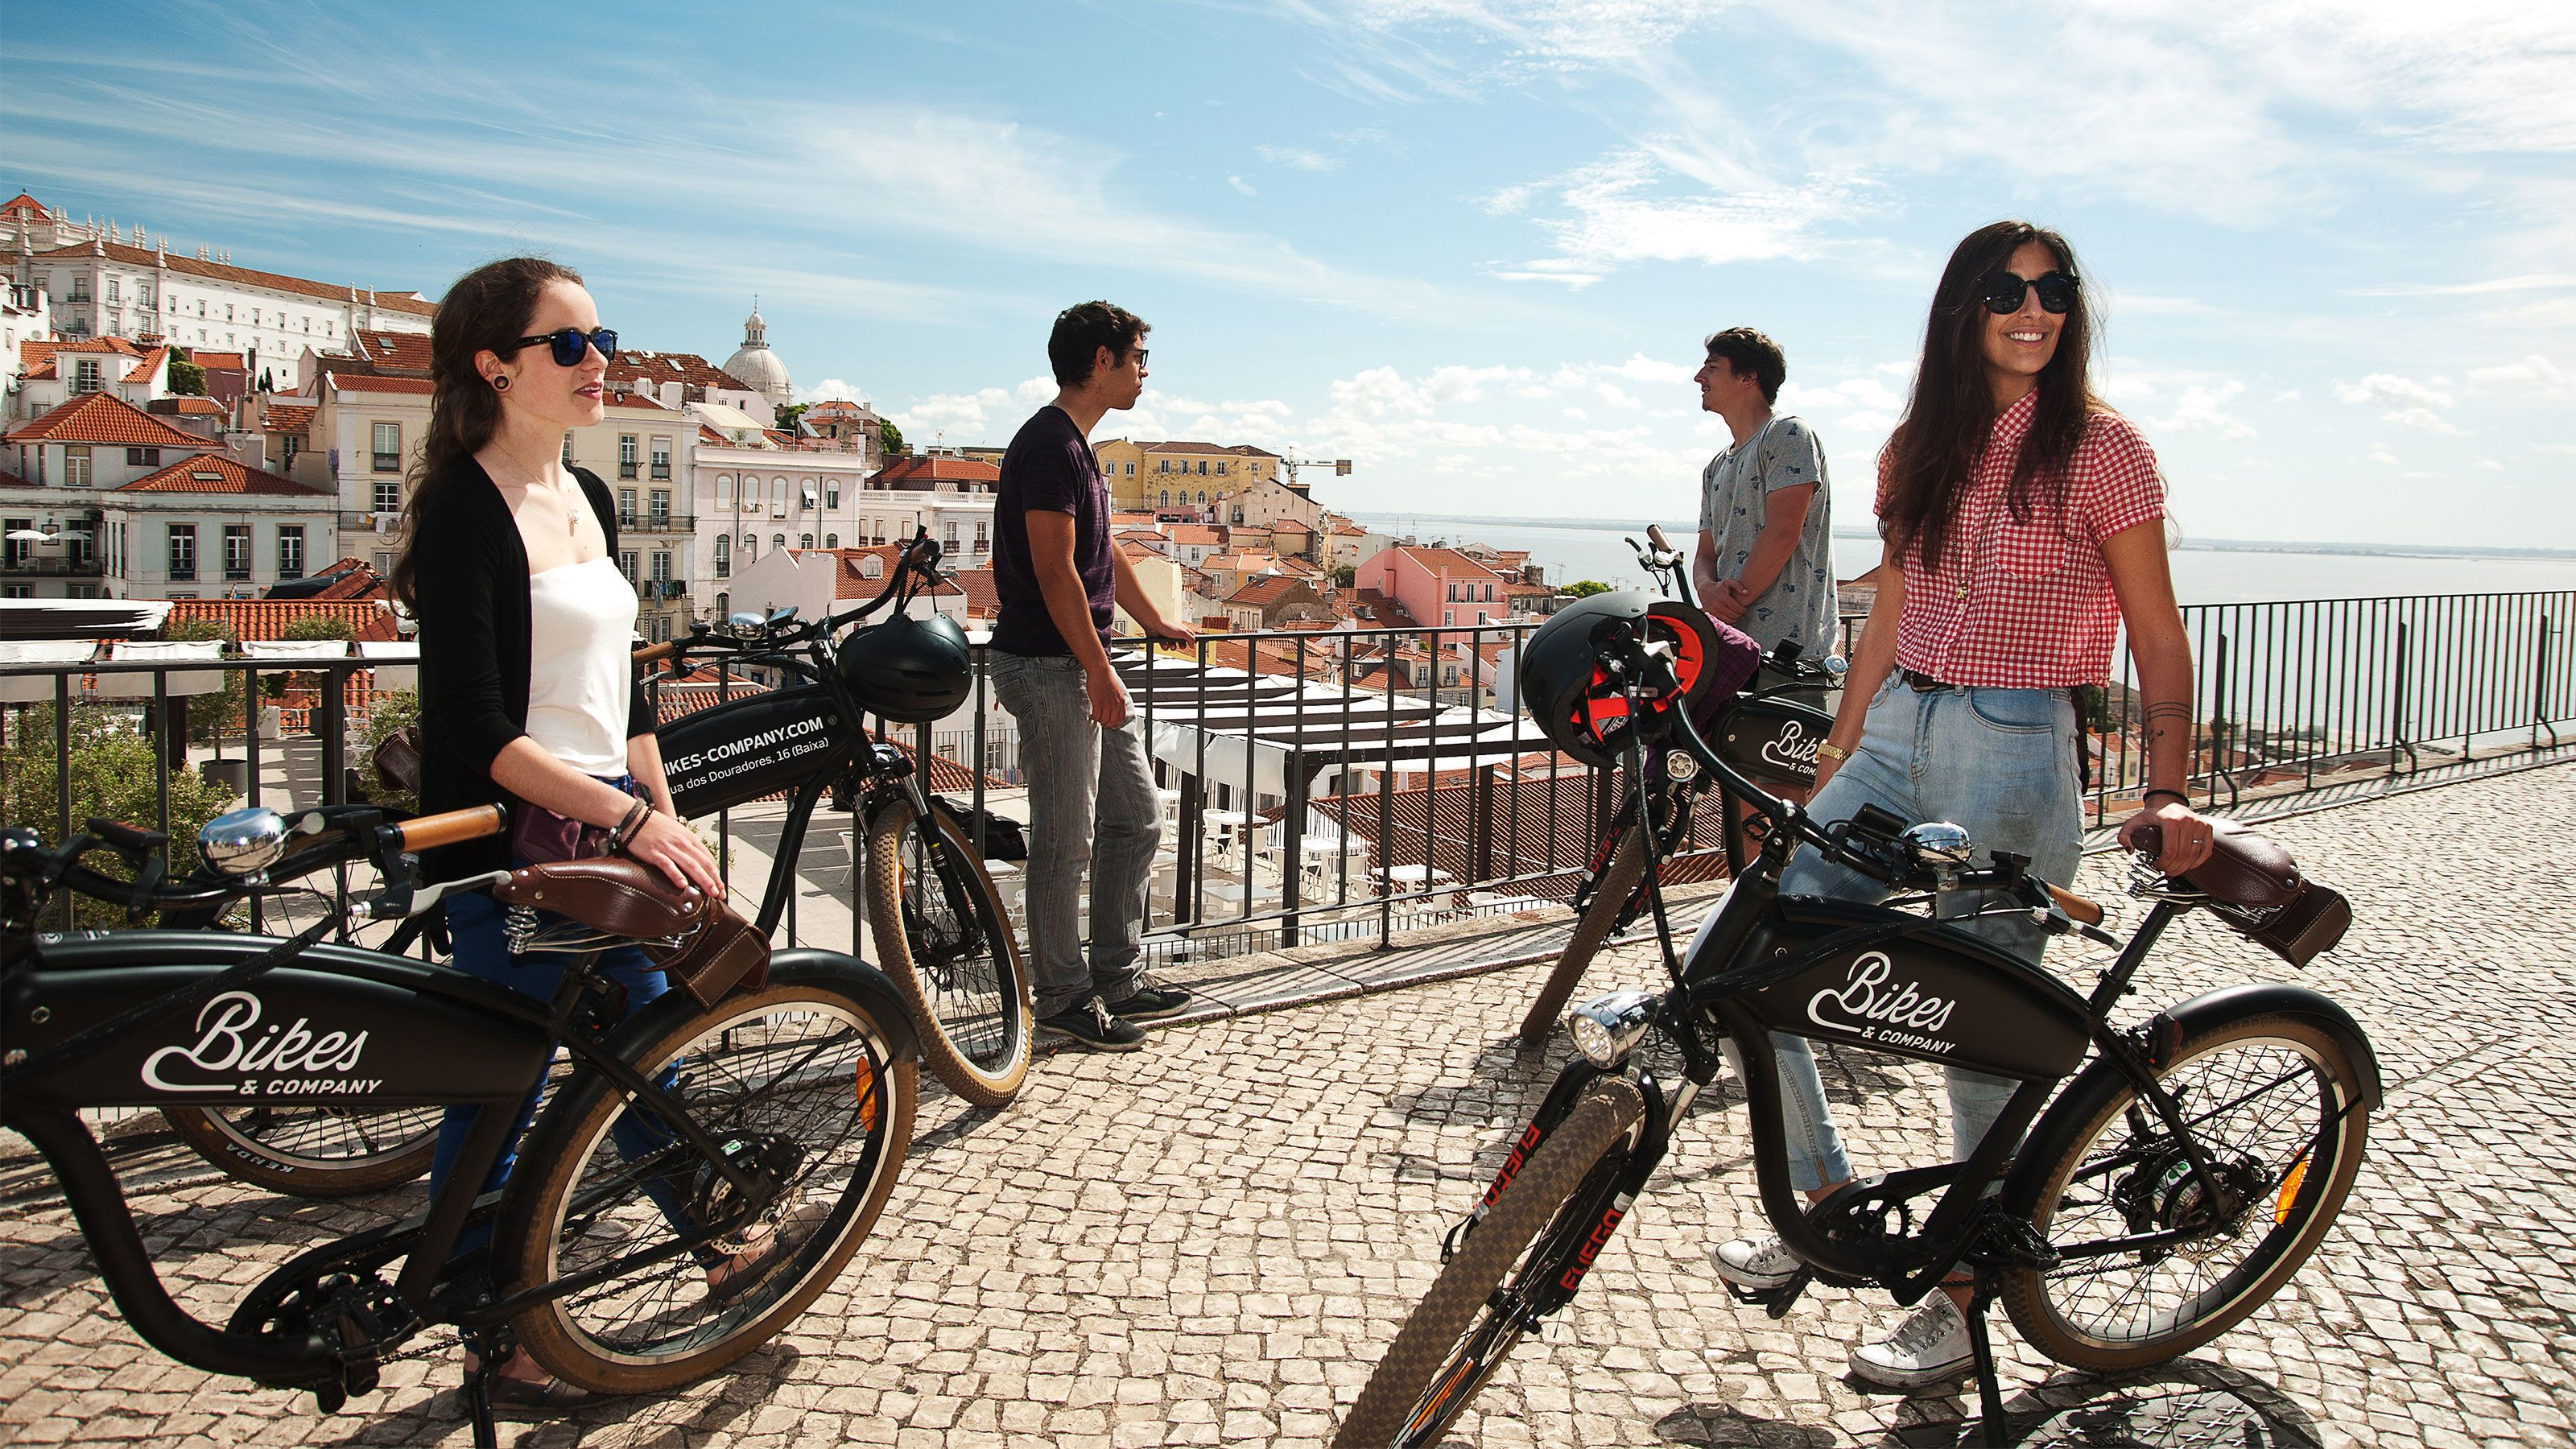 Bicycling group at a scenic viewpoint in Lisbon